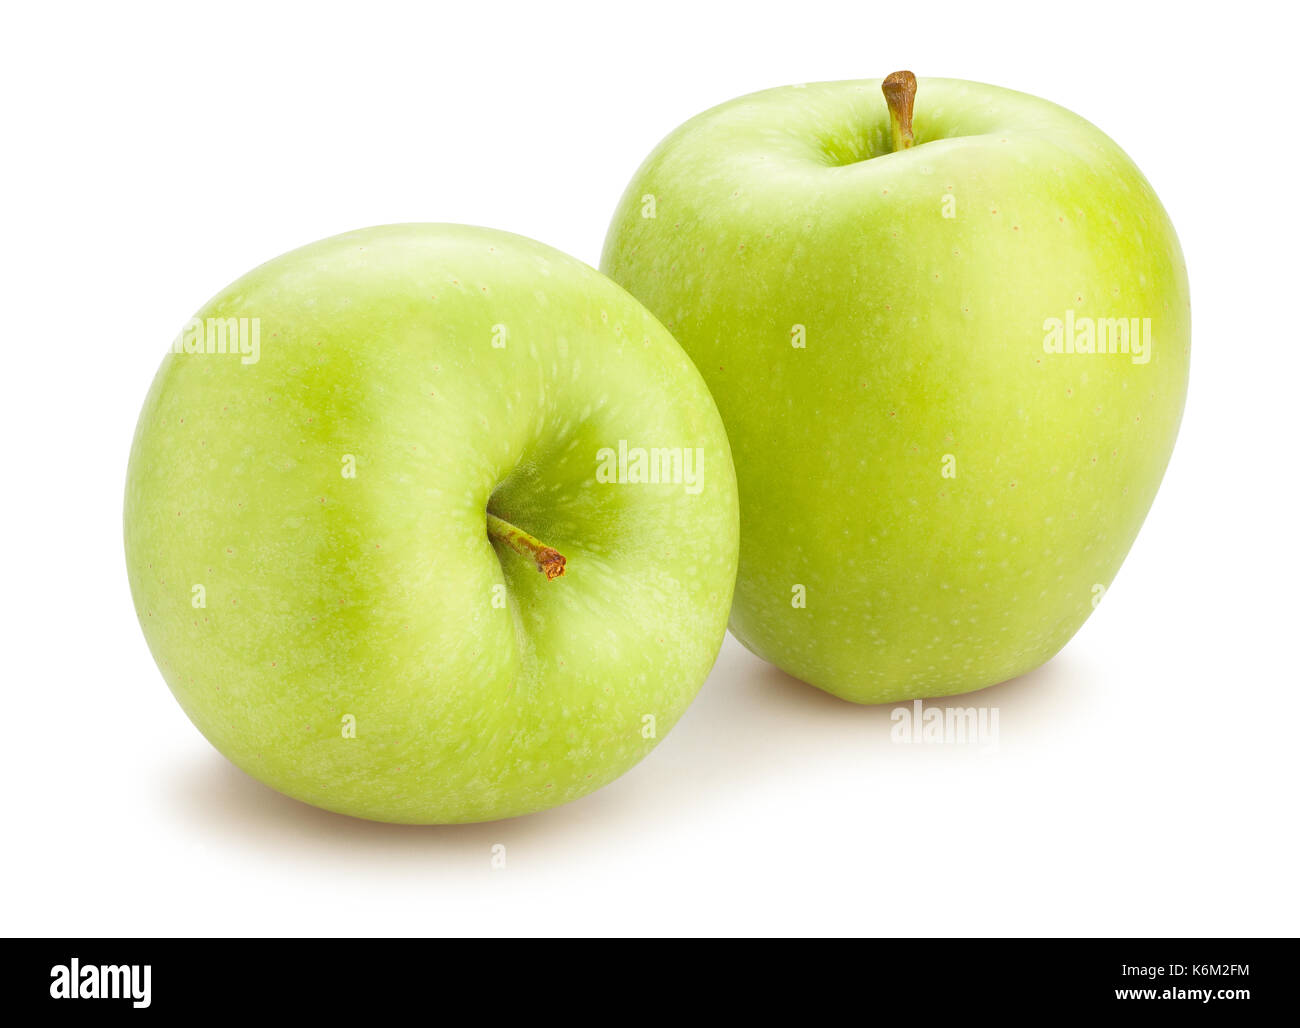 green apple path isolated - Stock Image